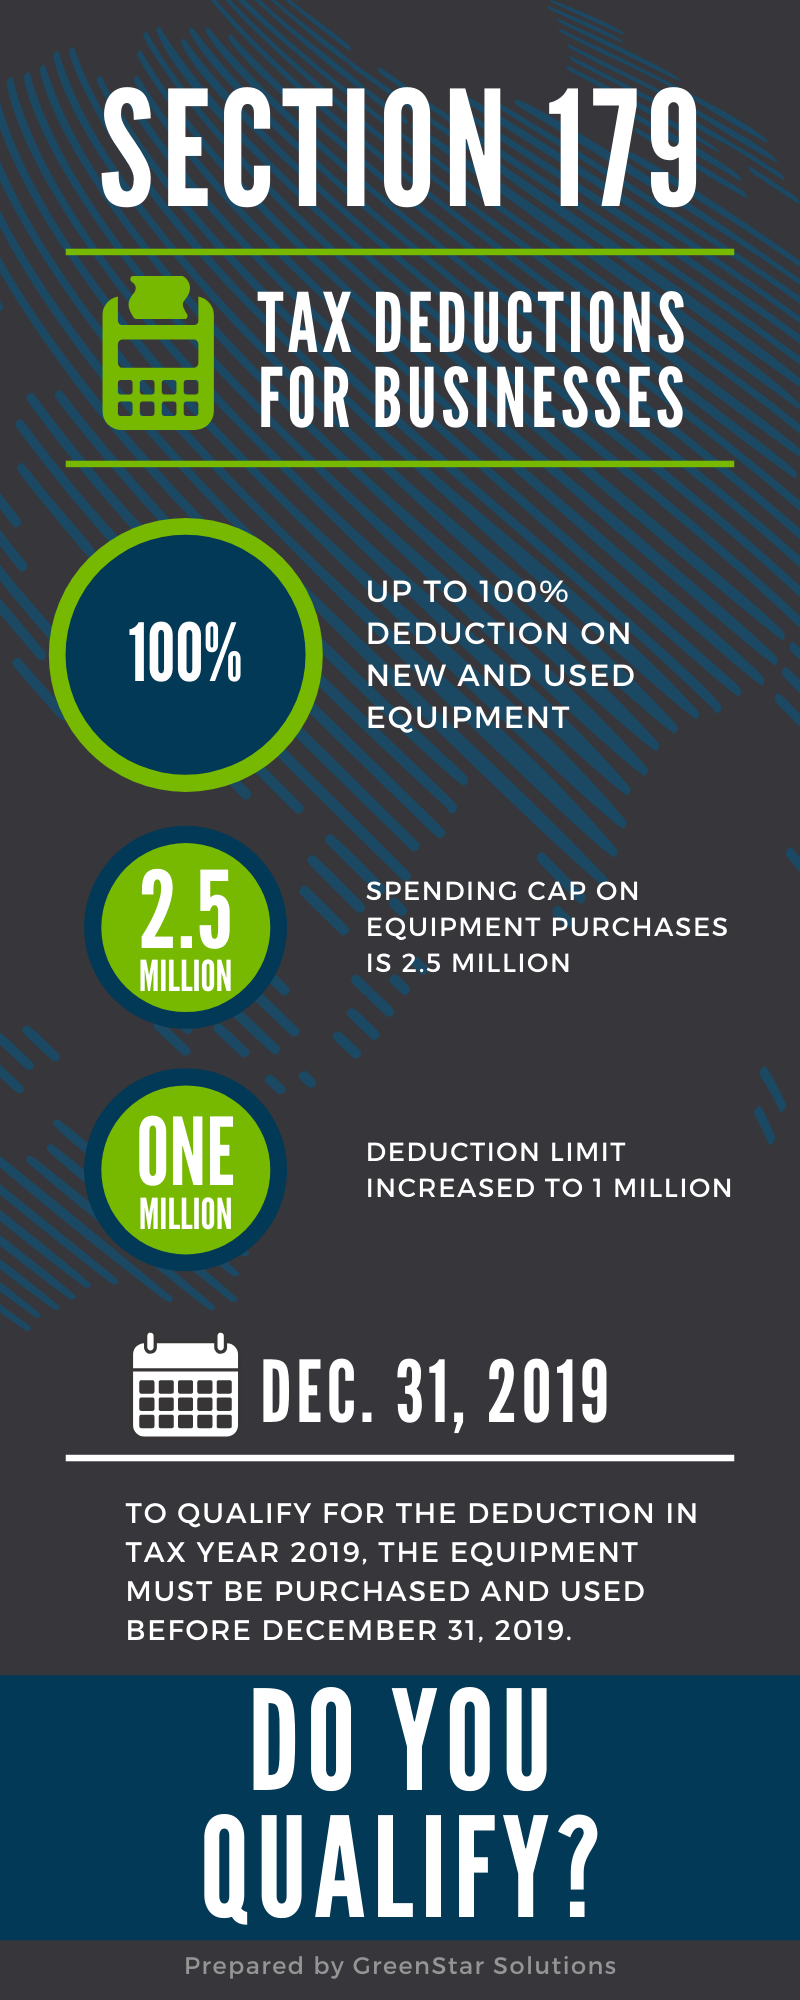 Section 179 Tax Deductions Infographic